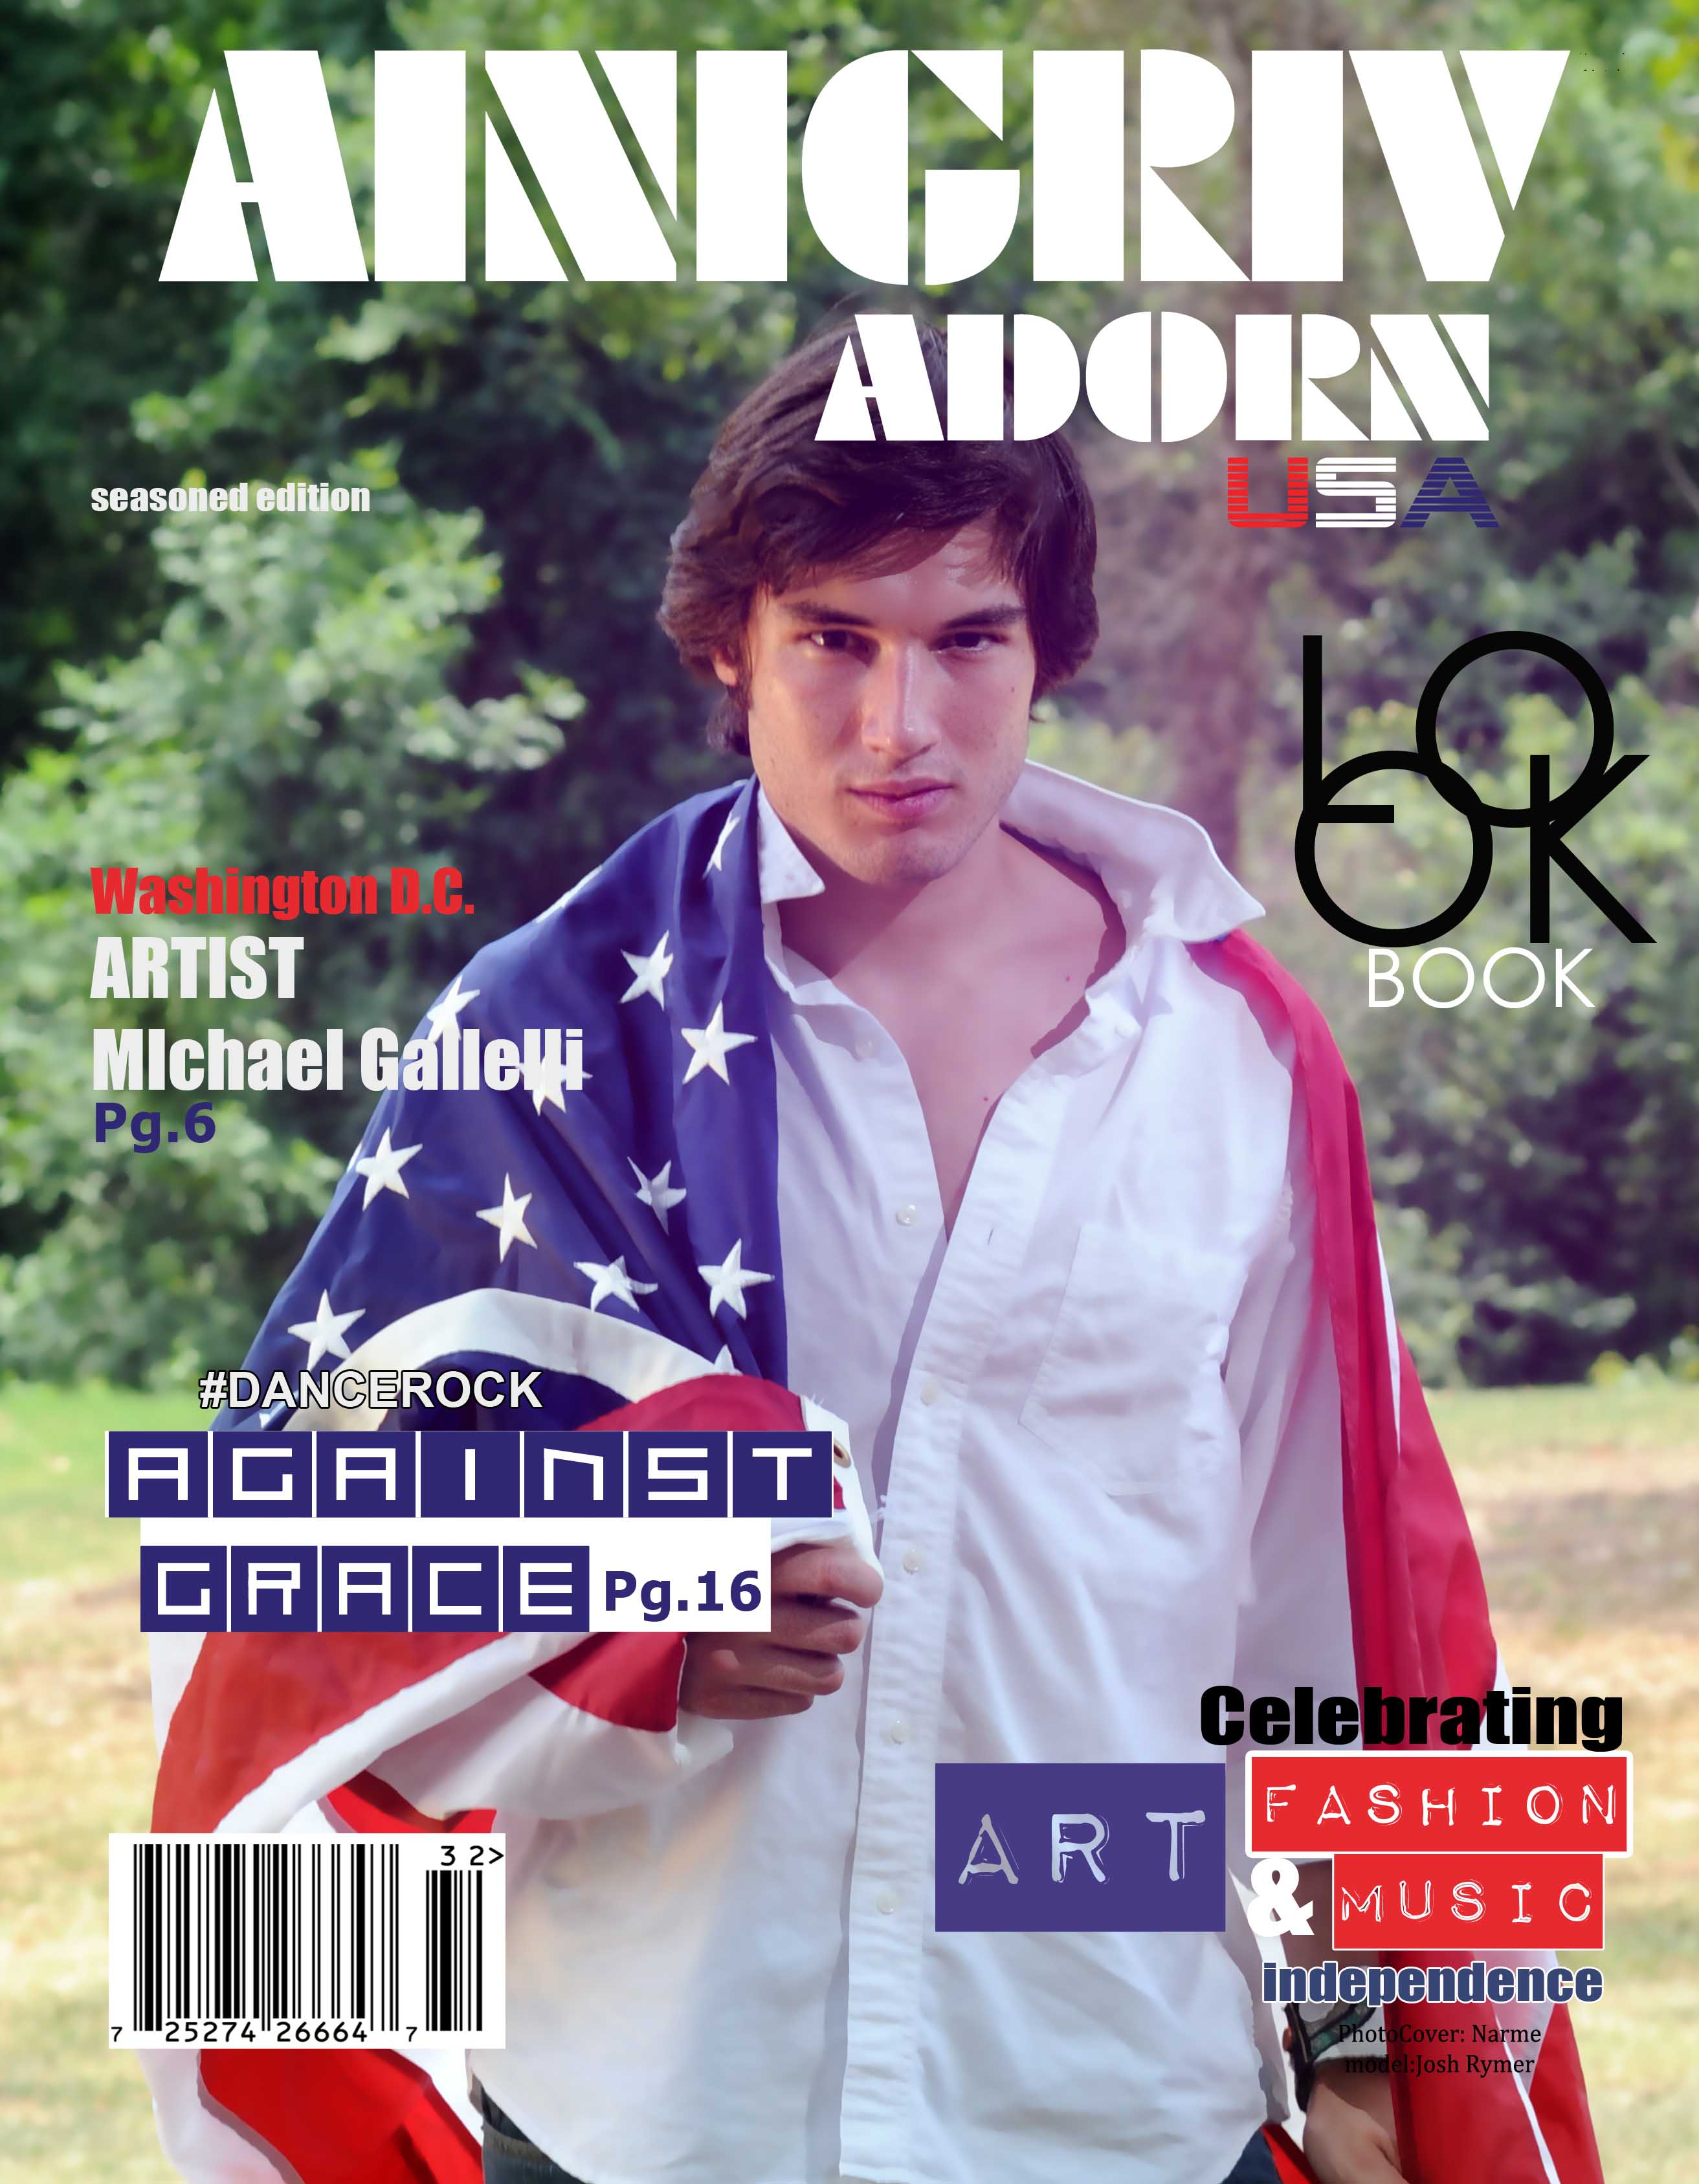 Ainigriv Adorn Look Book Magazine 6